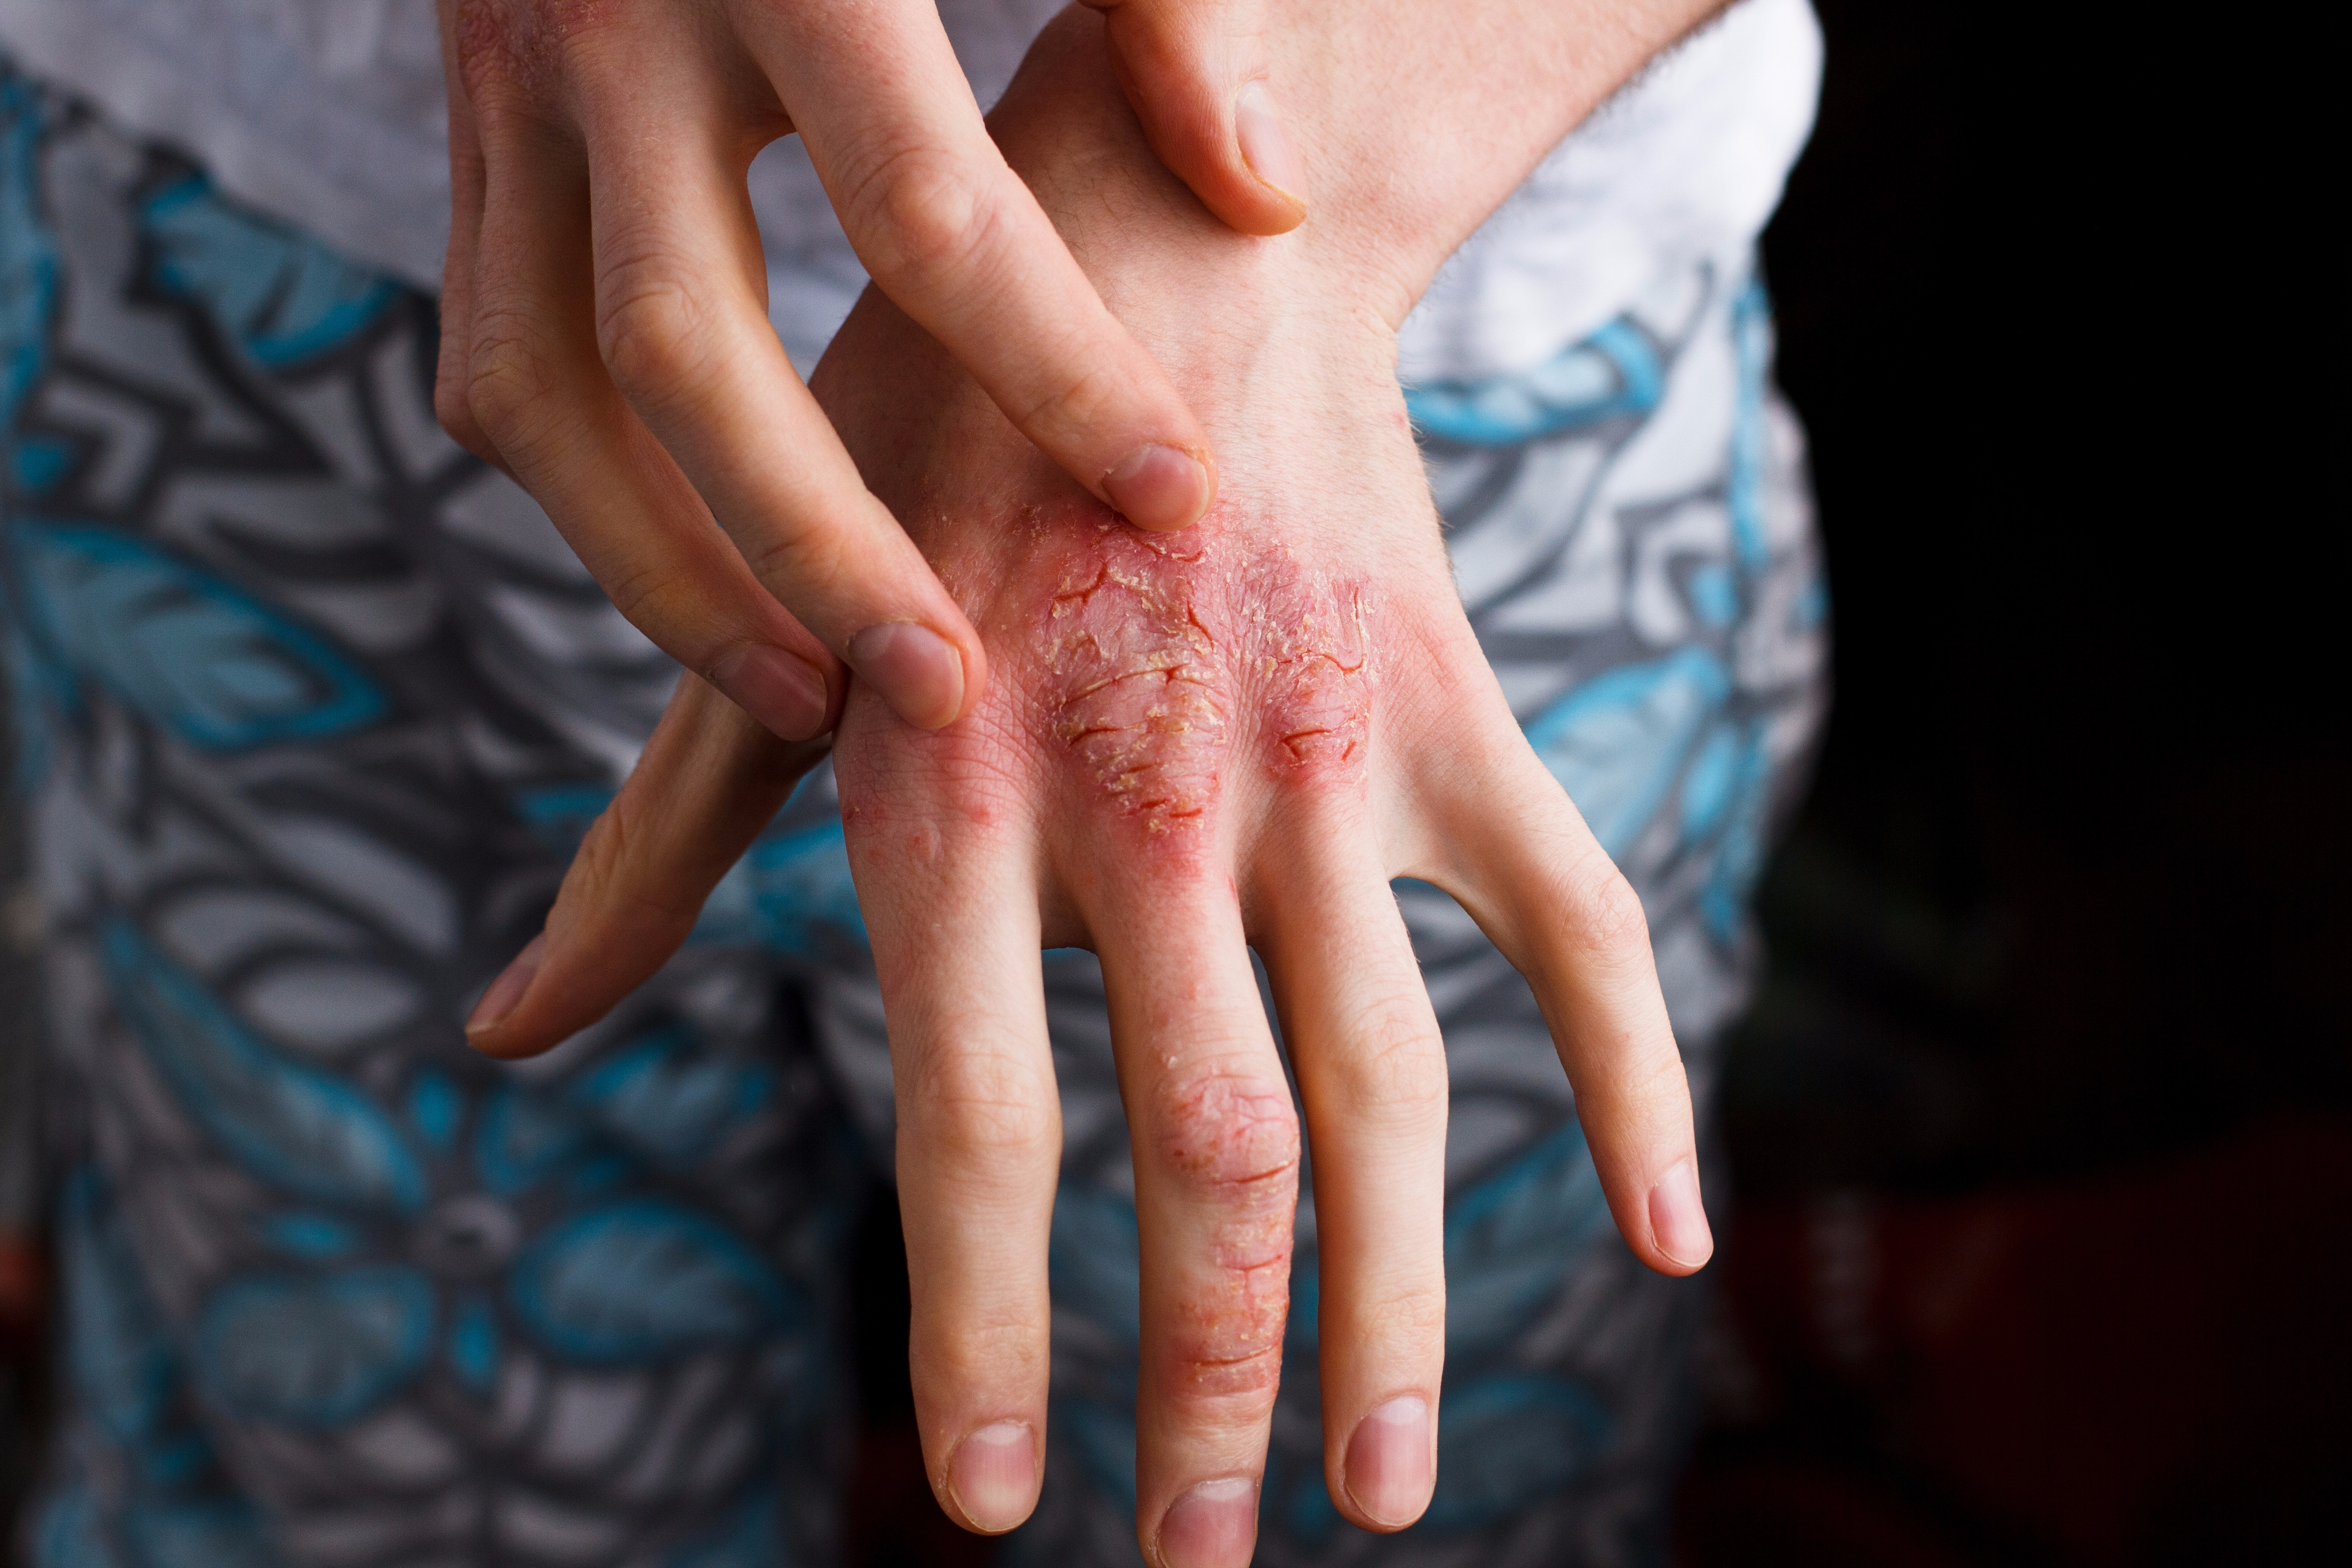 An image depicting a person suffering from Eczema (Atopic Dermatitis) symptoms